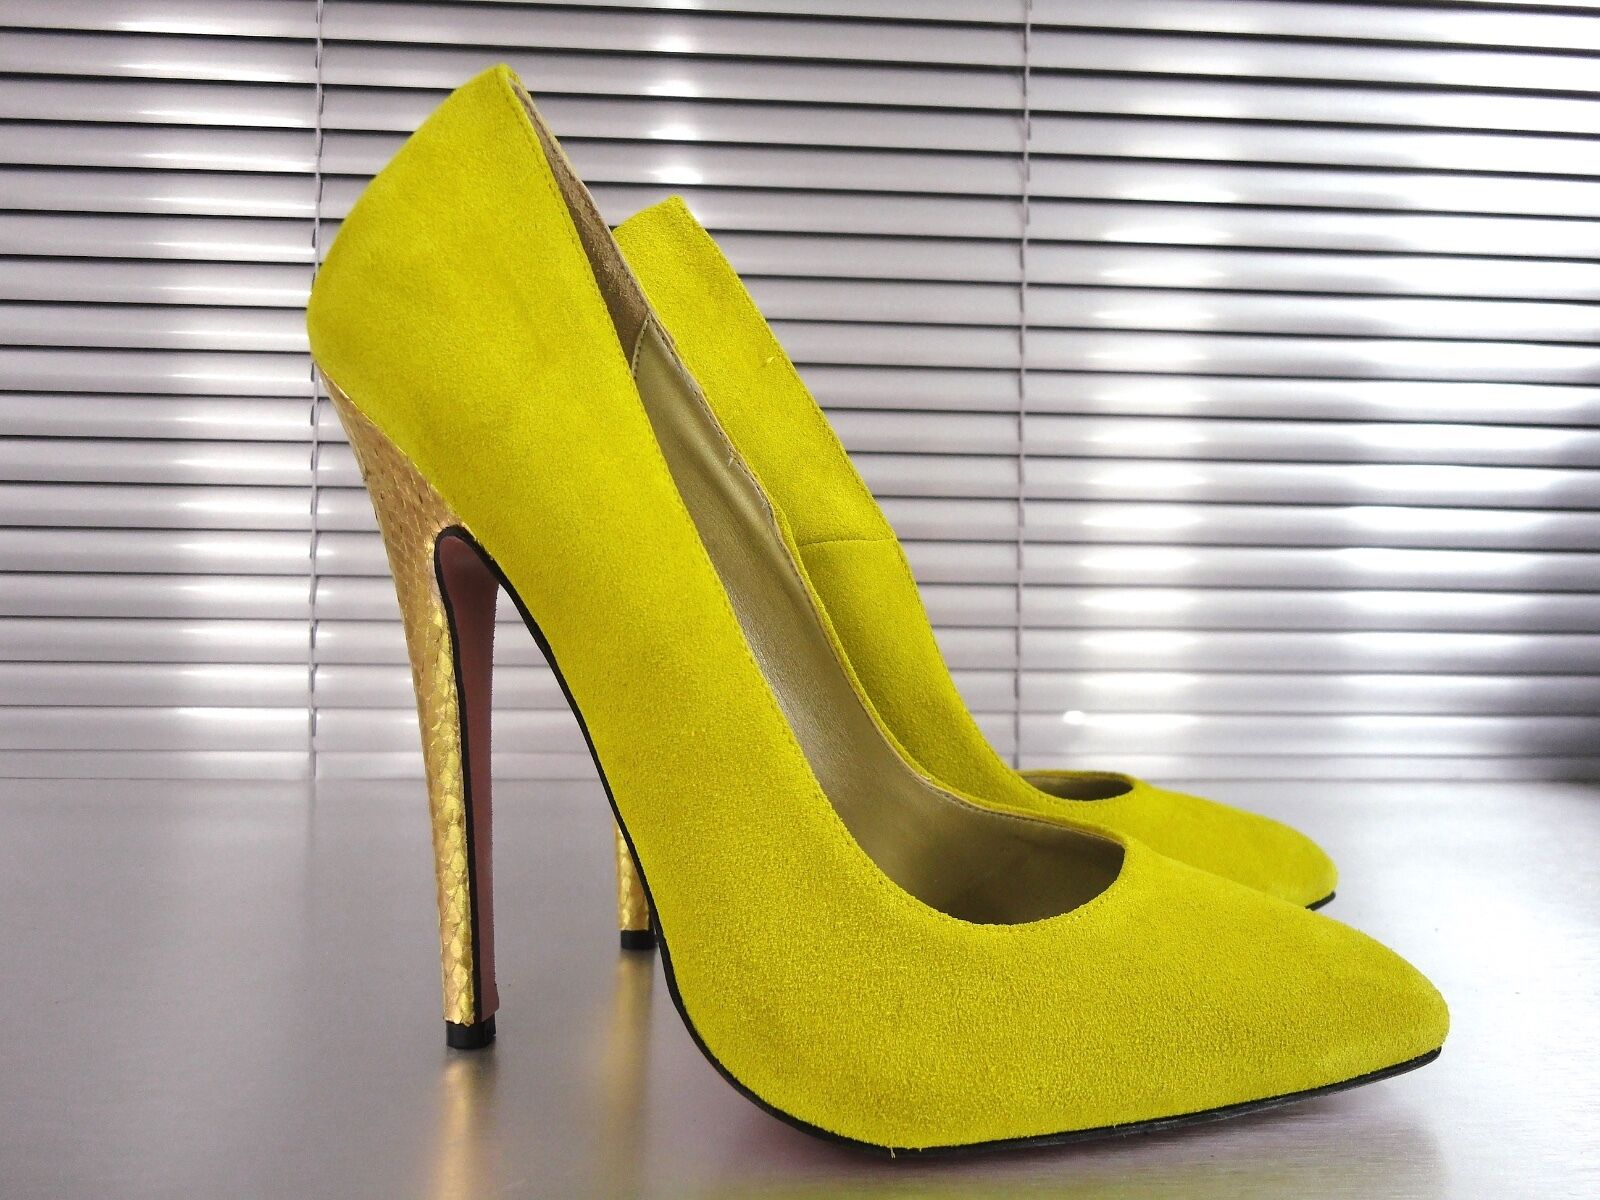 MORI MADE IN ITALY HIGH SKY HEELS PUMPS SCHUHE 45 Schuhe LEATHER GIALLO YELLOW 45 SCHUHE 2a3d2f